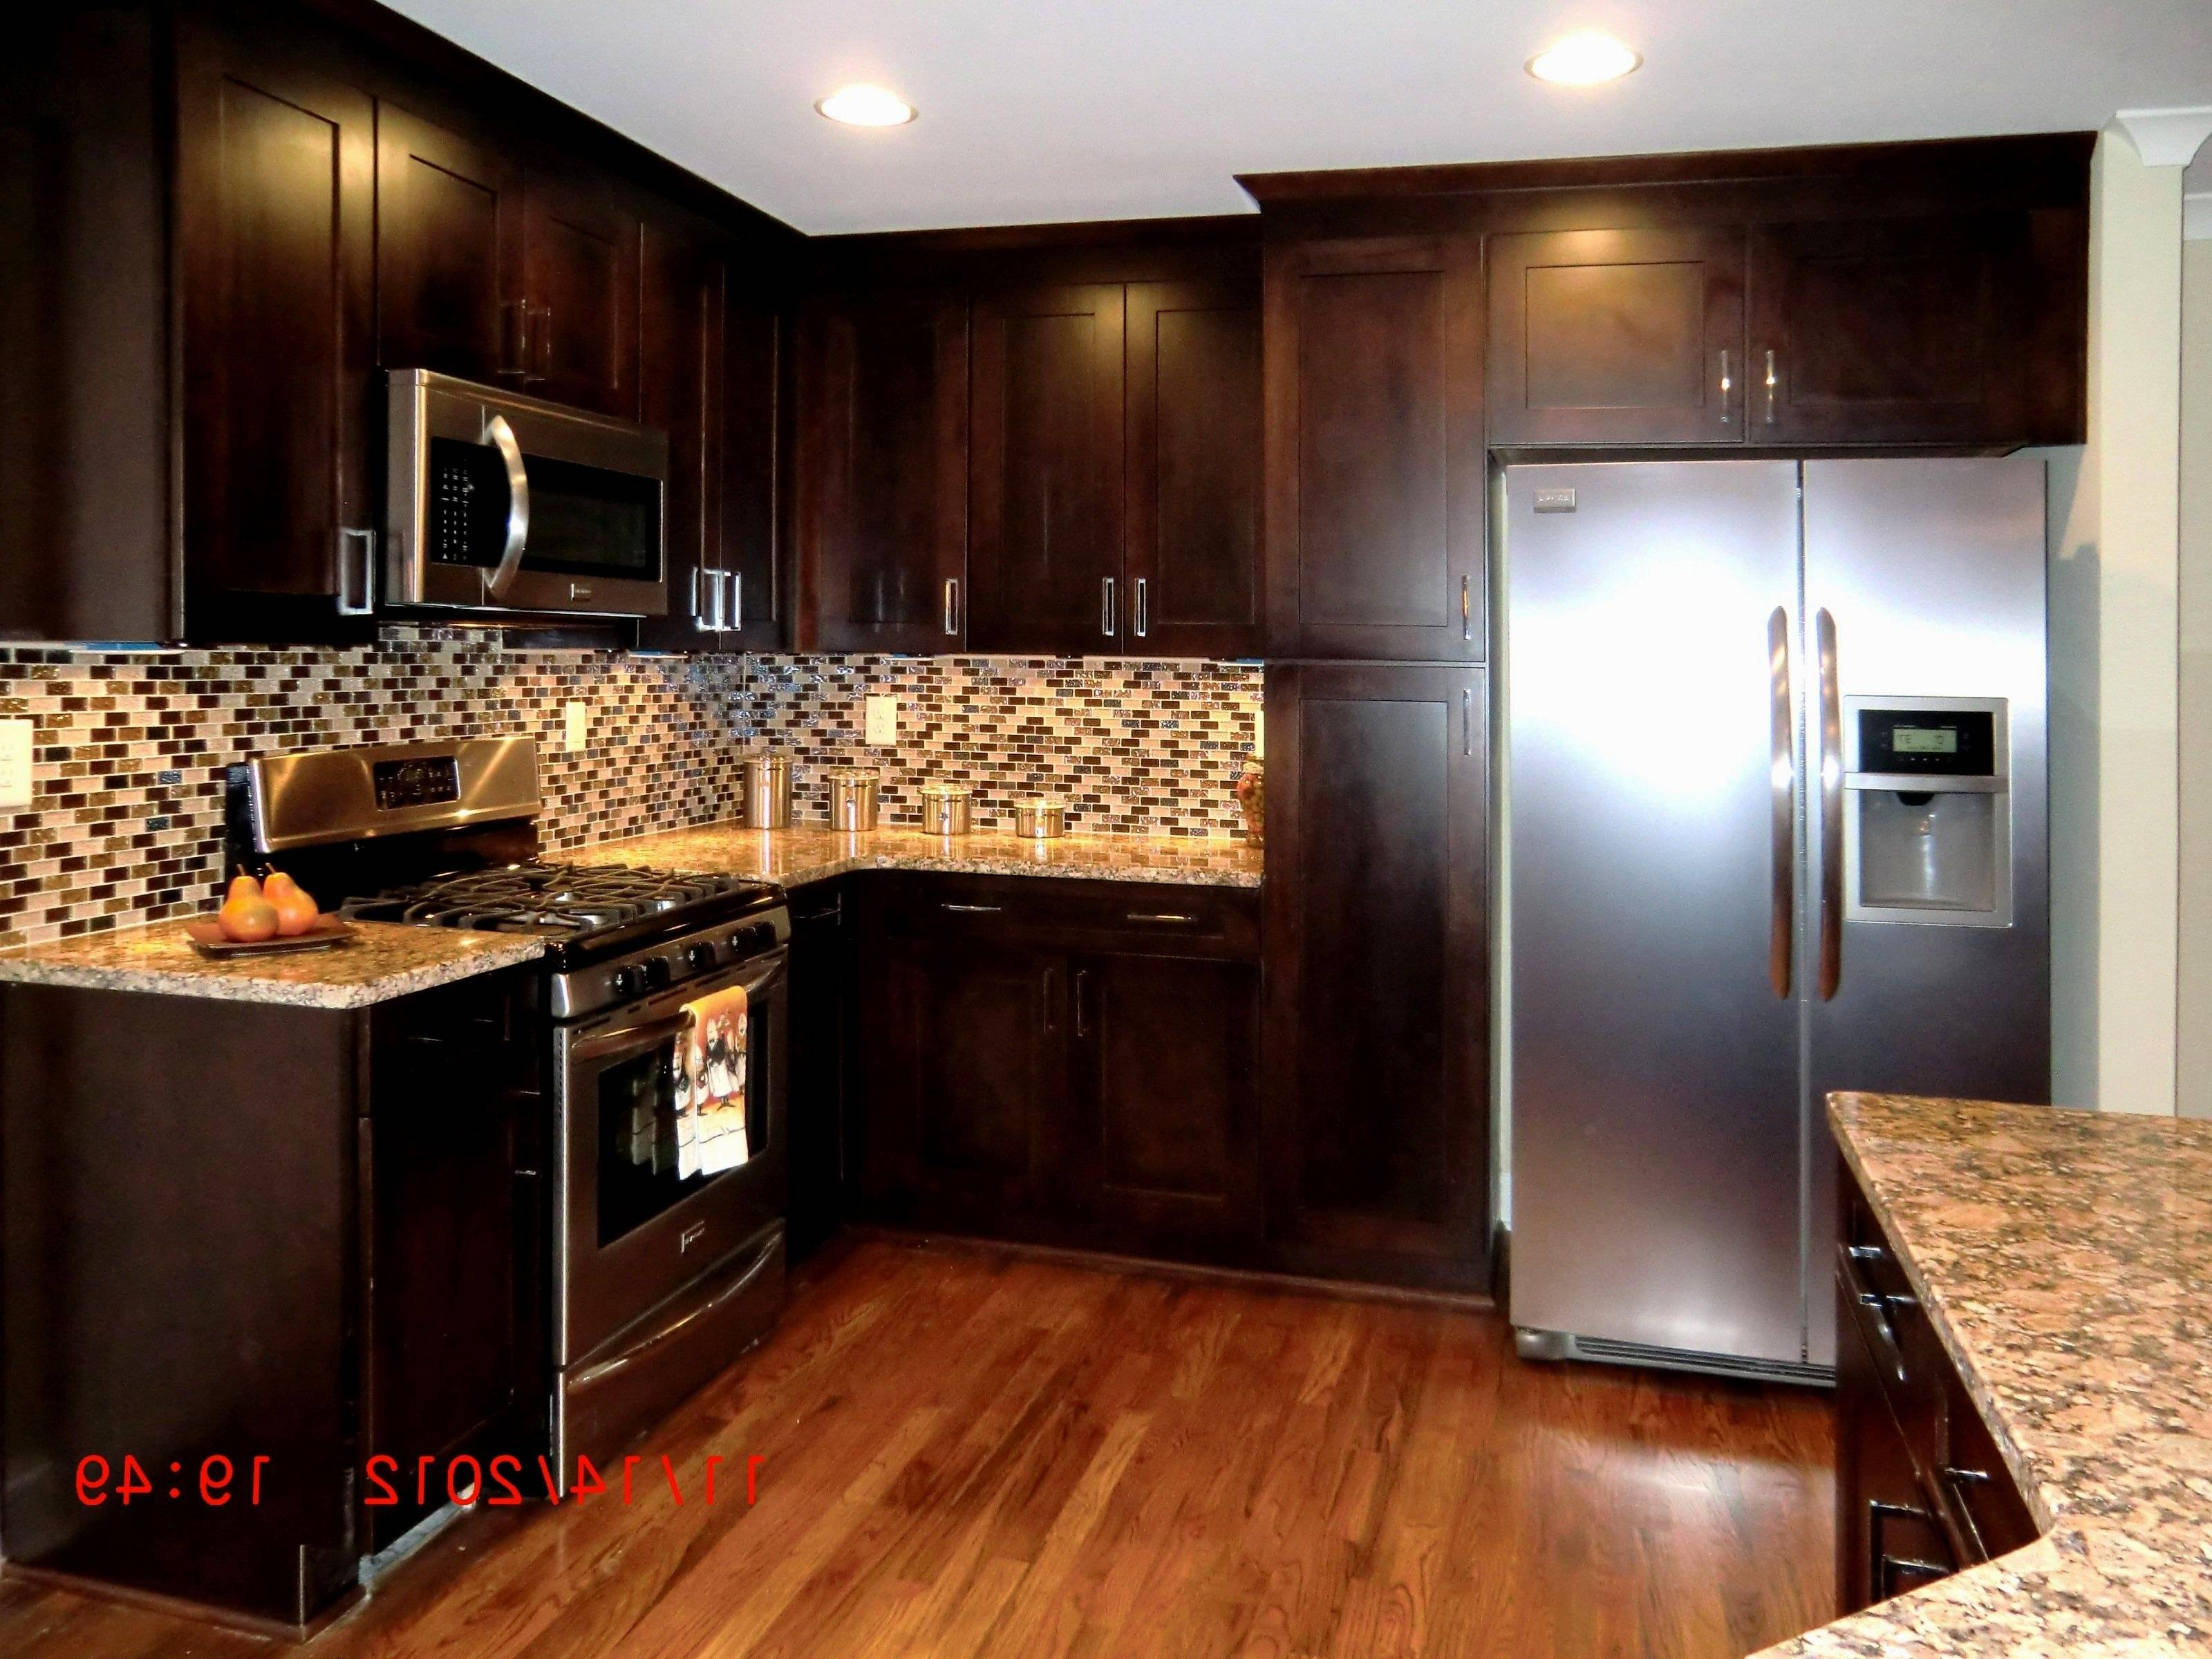 painting kitchen cabinets two different colors 20 beautiful design for kitchen cabinets painted two colors of painting kitchen cabinets two different colors 1